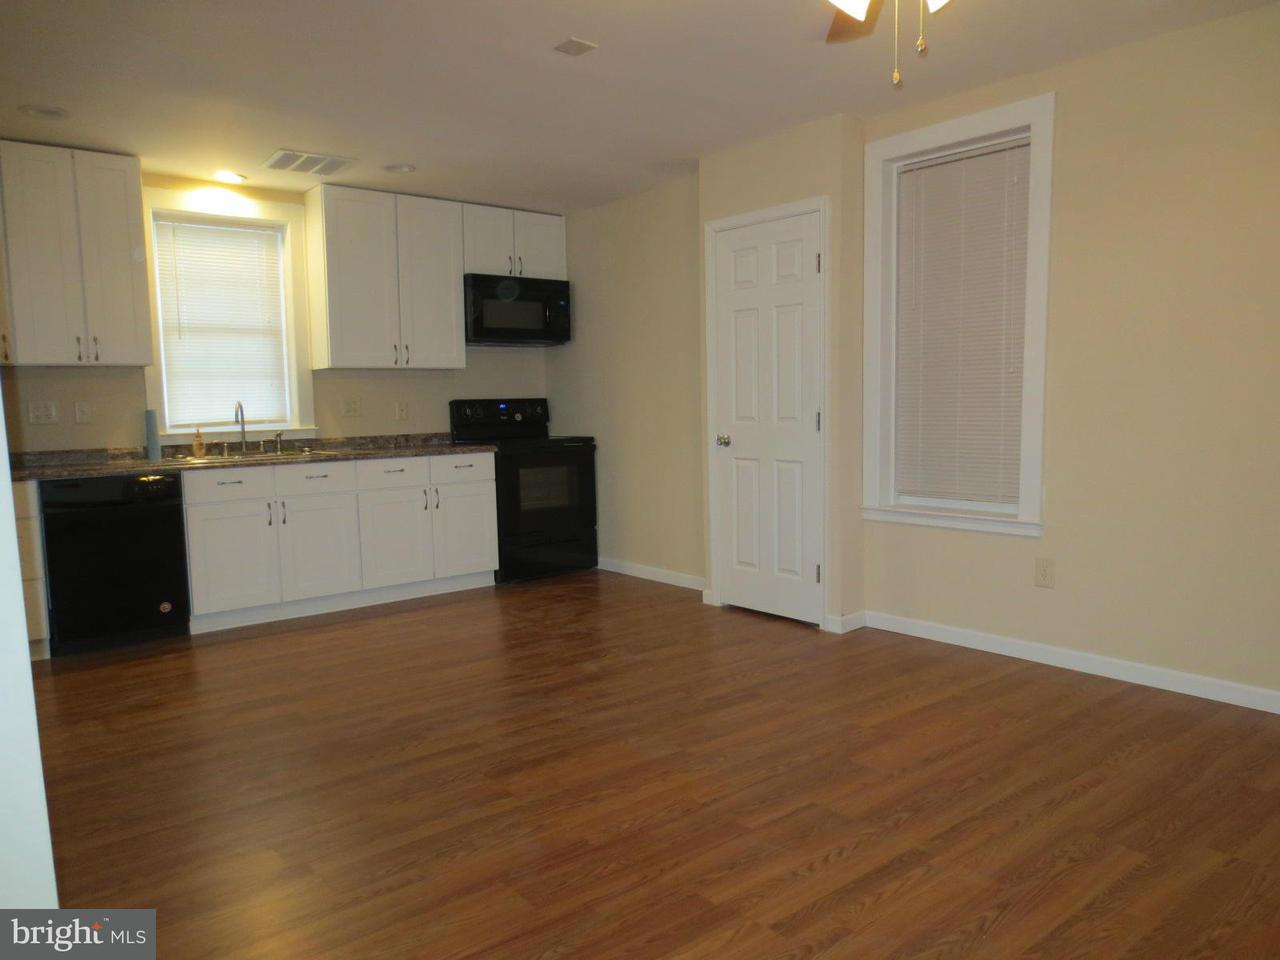 Other Residential for Rent at 219 E Clarke Ave York, Pennsylvania 17403 United States